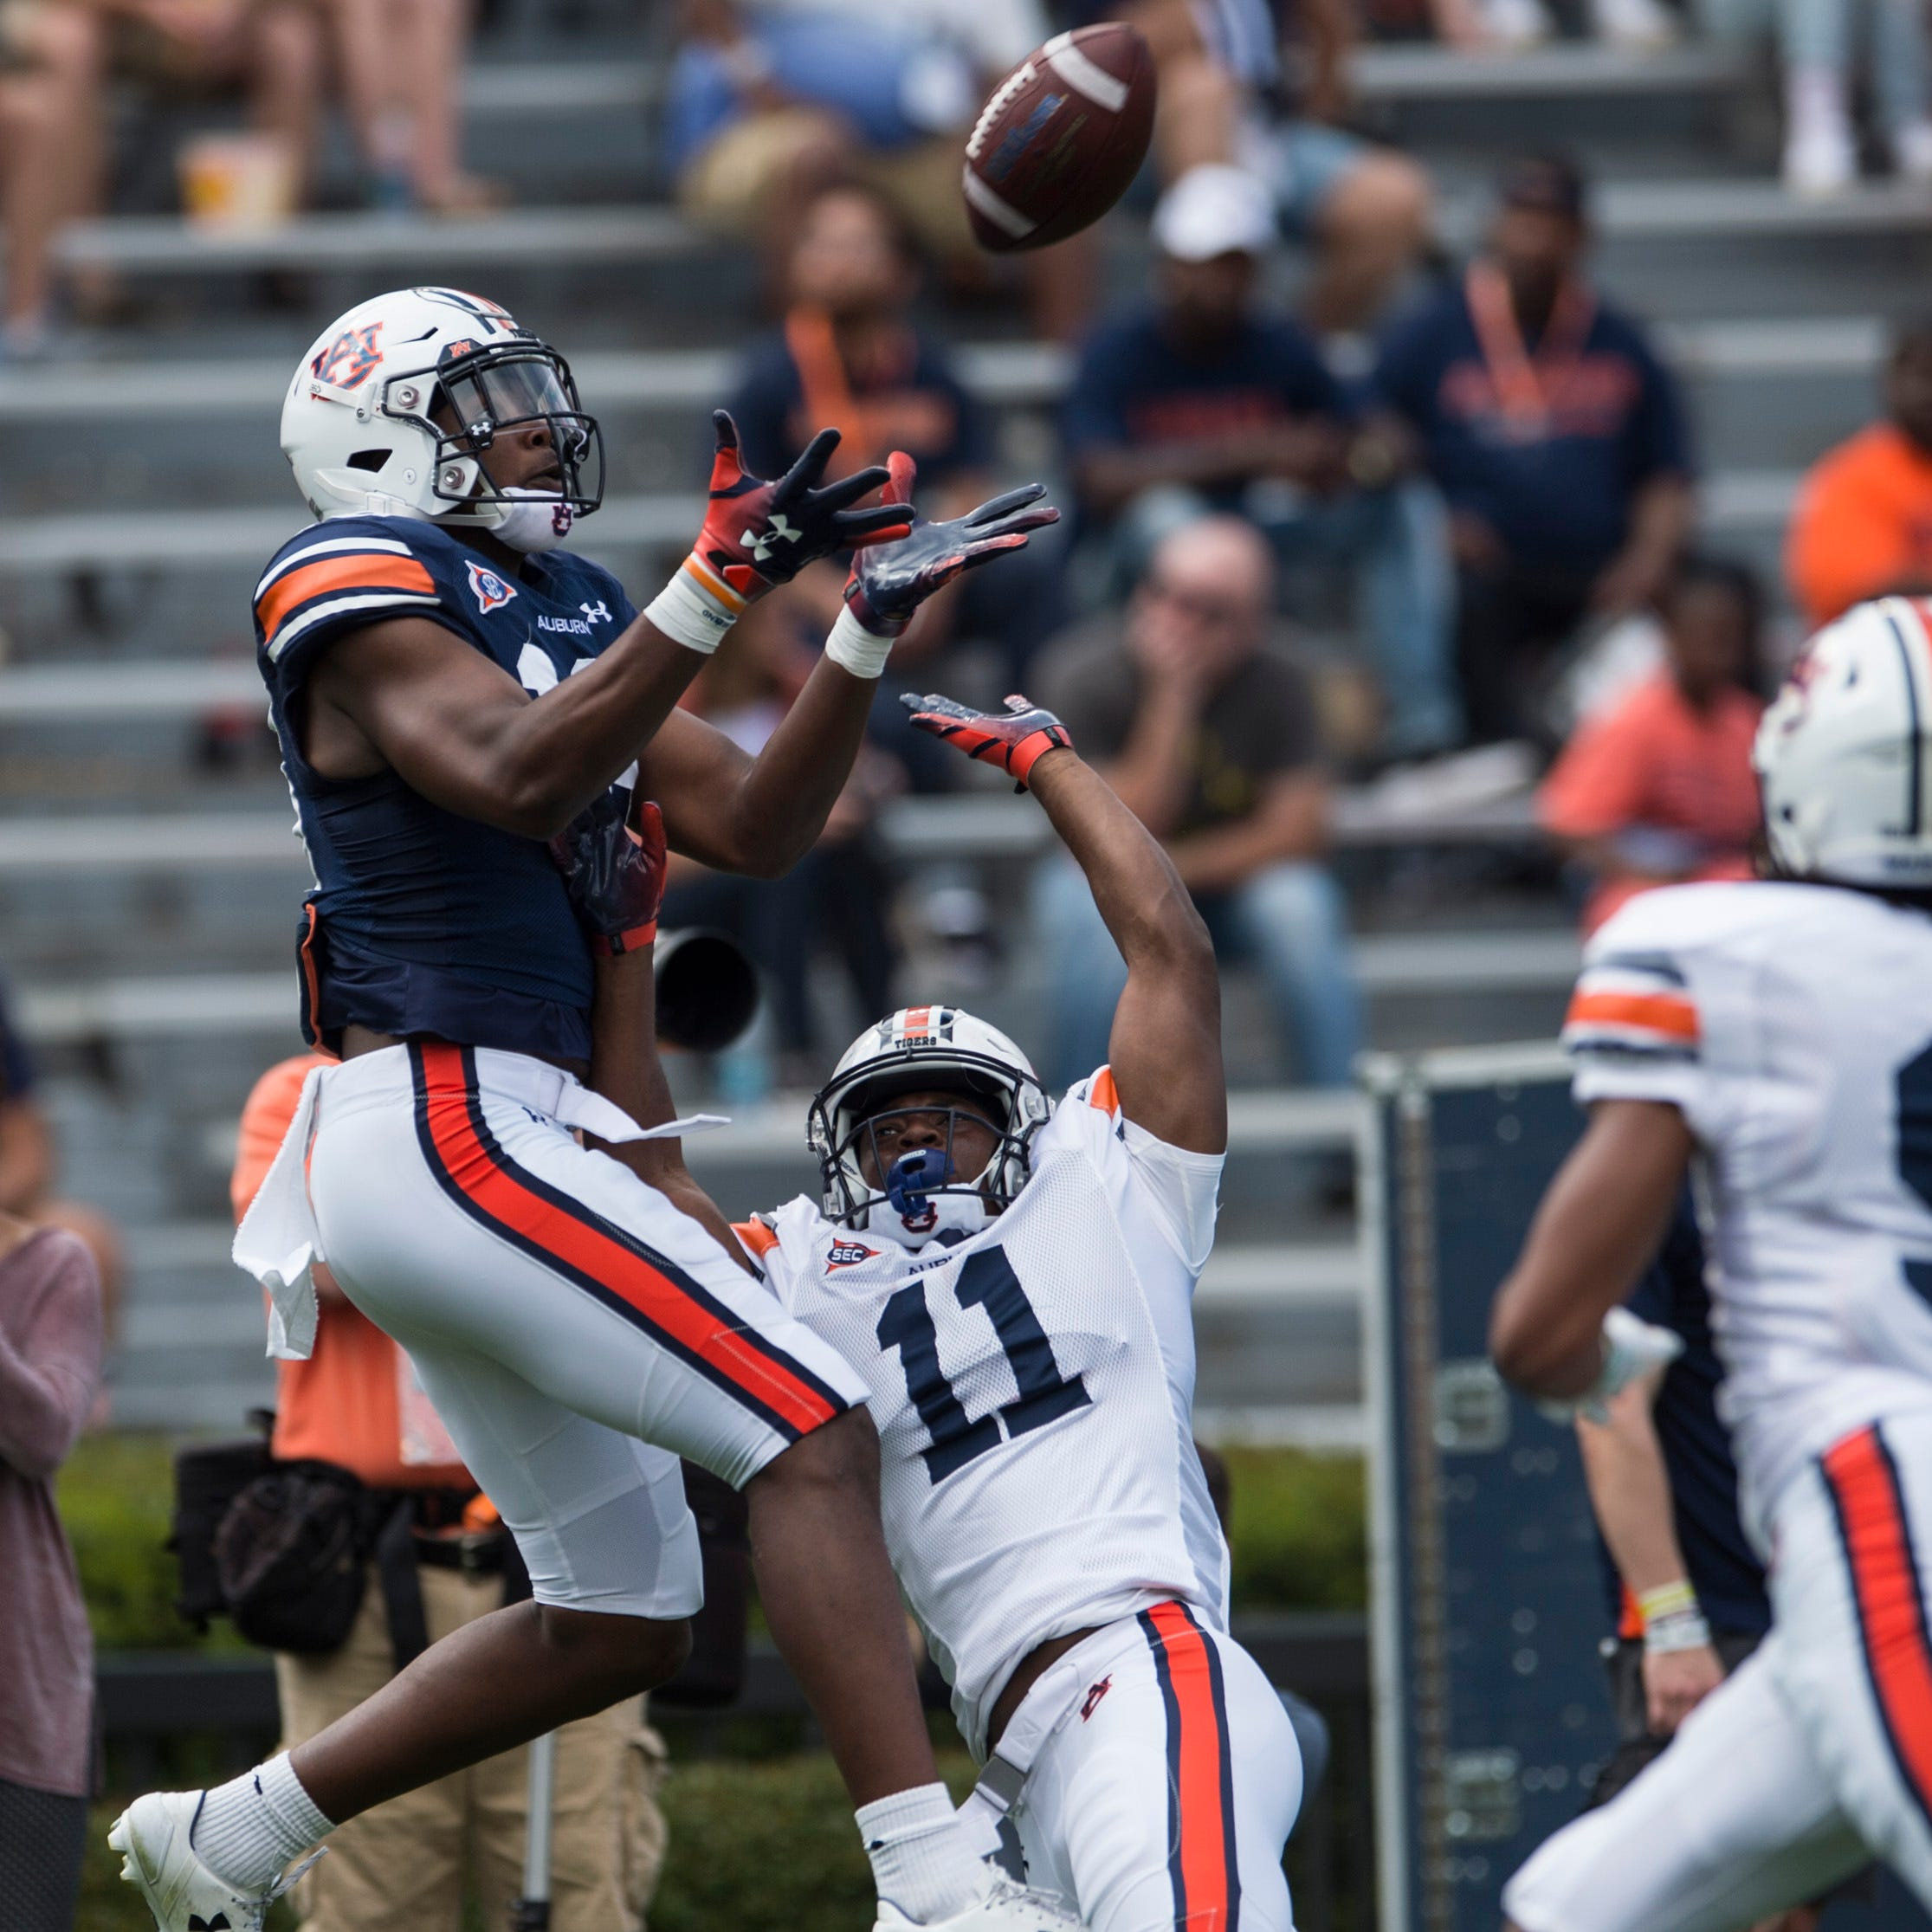 Non-QB A-Day observations: Williams leads explosive WR group, OL far improved, Wooten injured